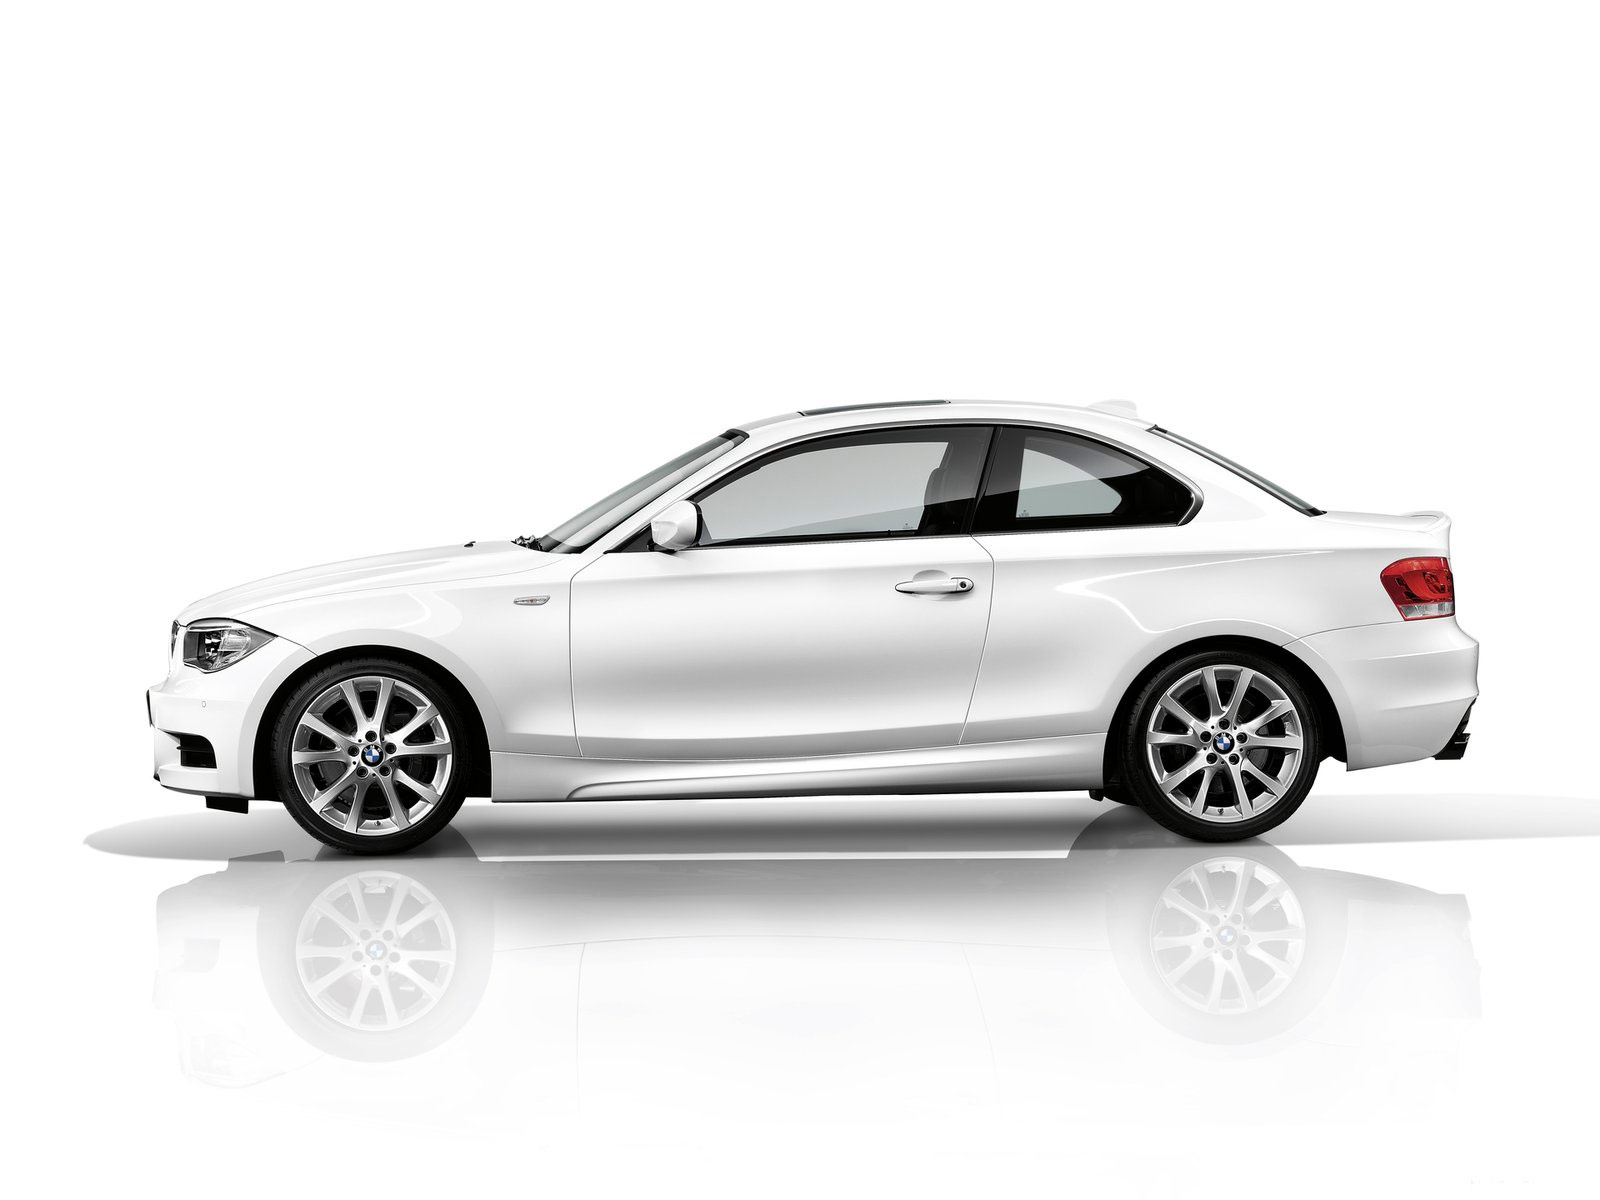 2012 bmw 1 series coupe wallpapers car accident lawyers info. Black Bedroom Furniture Sets. Home Design Ideas